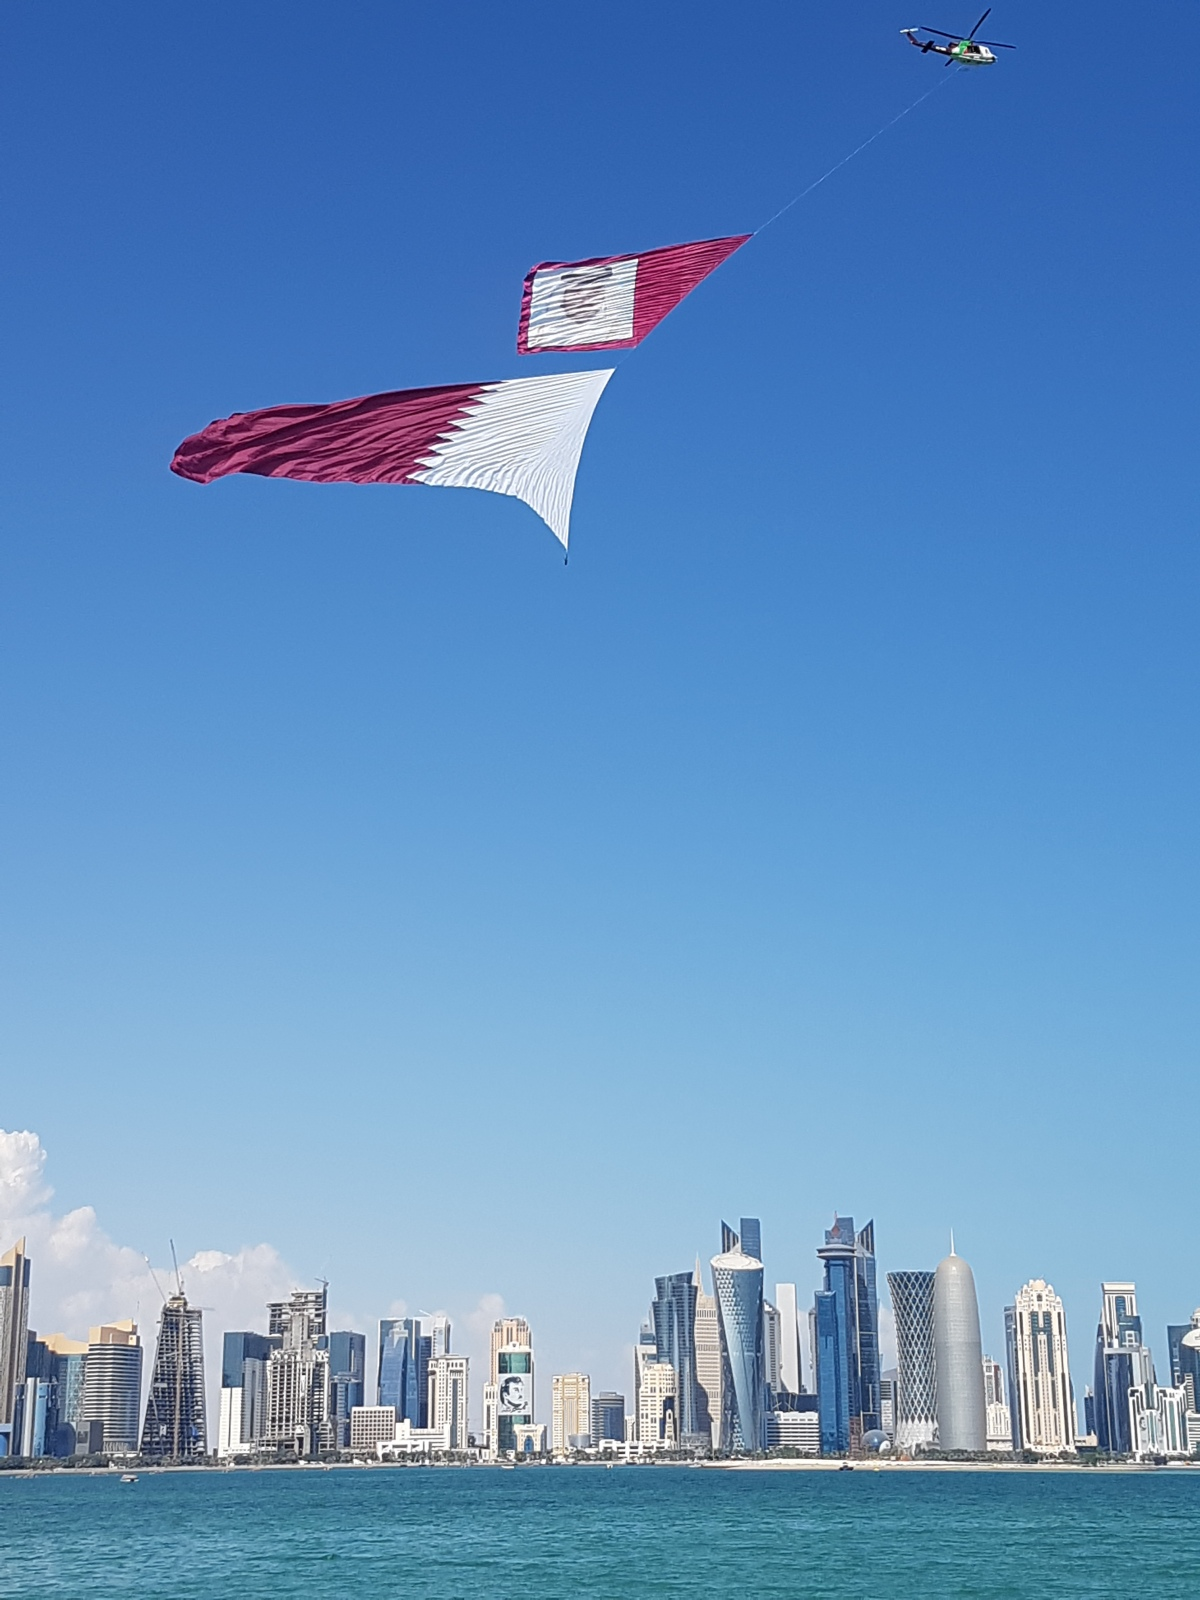 Qatar's National Day: A Celebration of Fortitude